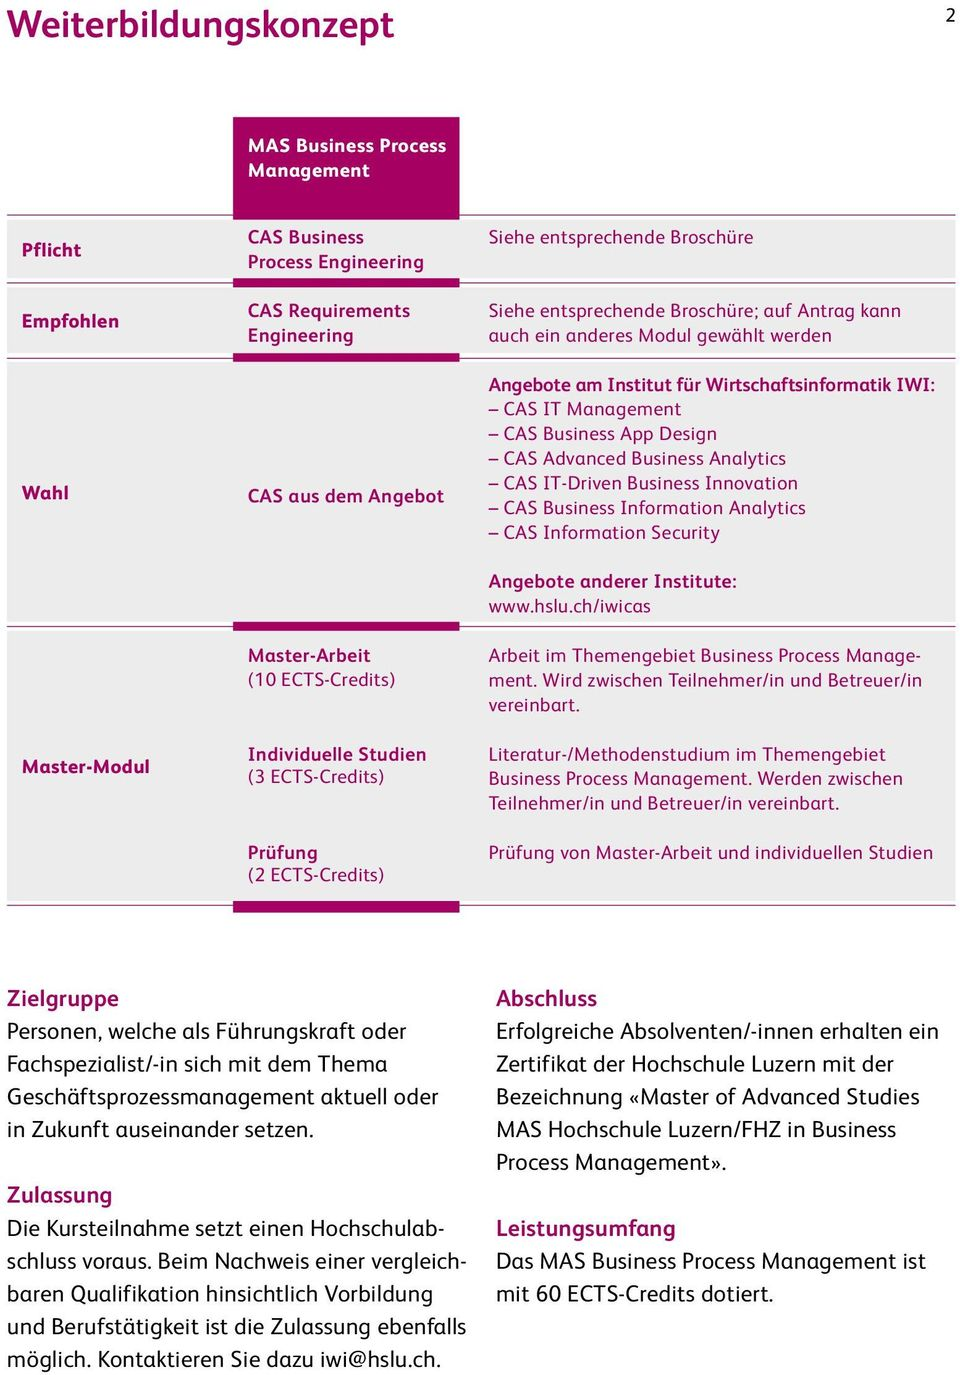 Angebote am Institut für Wirtschaftsinformatik IWI: CAS IT Management CAS Business App Design CAS Advanced Business Analytics CAS IT-Driven Business Innovation CAS Business Information Analytics CAS